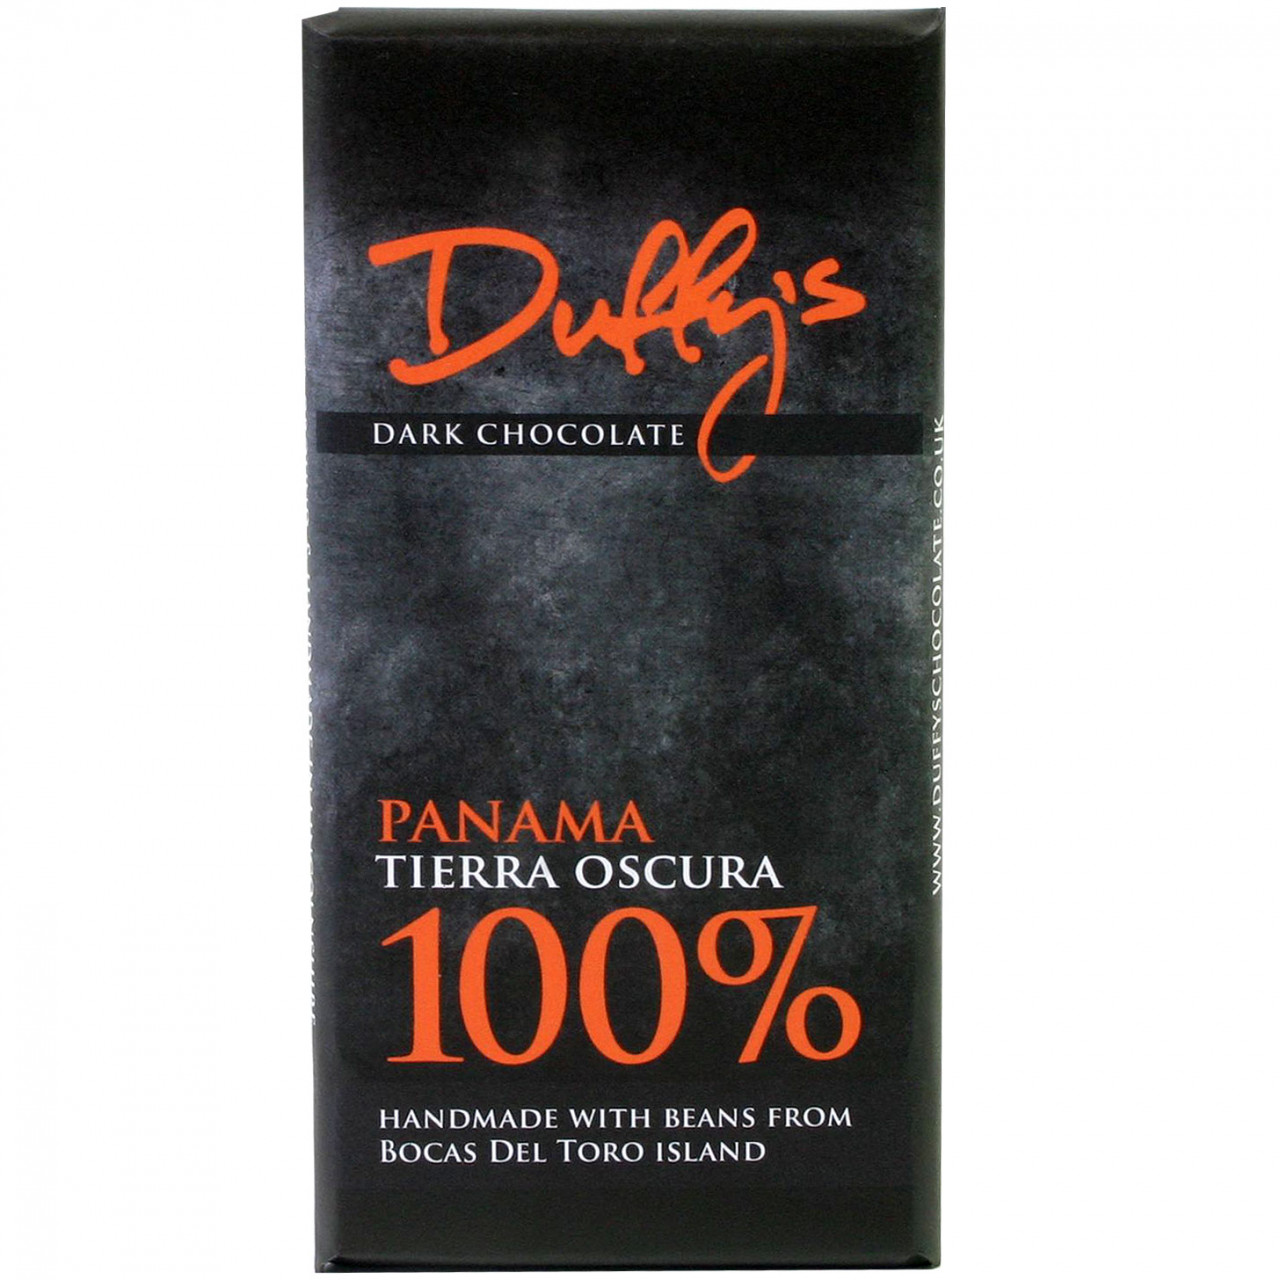 Panama Tierra Oscura, 100% Schokolade, Duffy's Chocolate, dark chocolate, chocolat noir, single origin, criollo, Venezuela